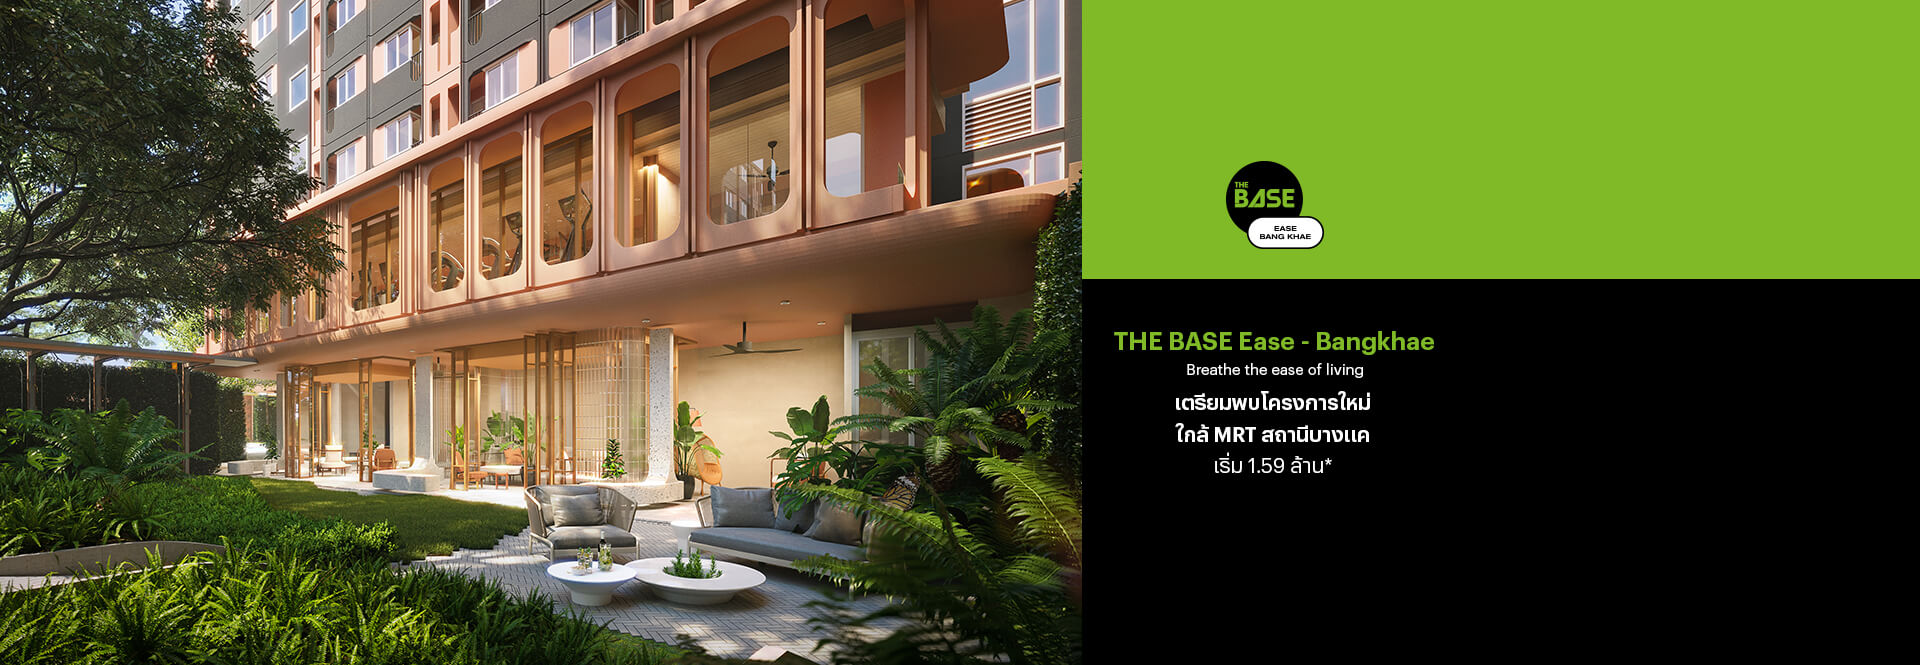 The Base ease bangkhae